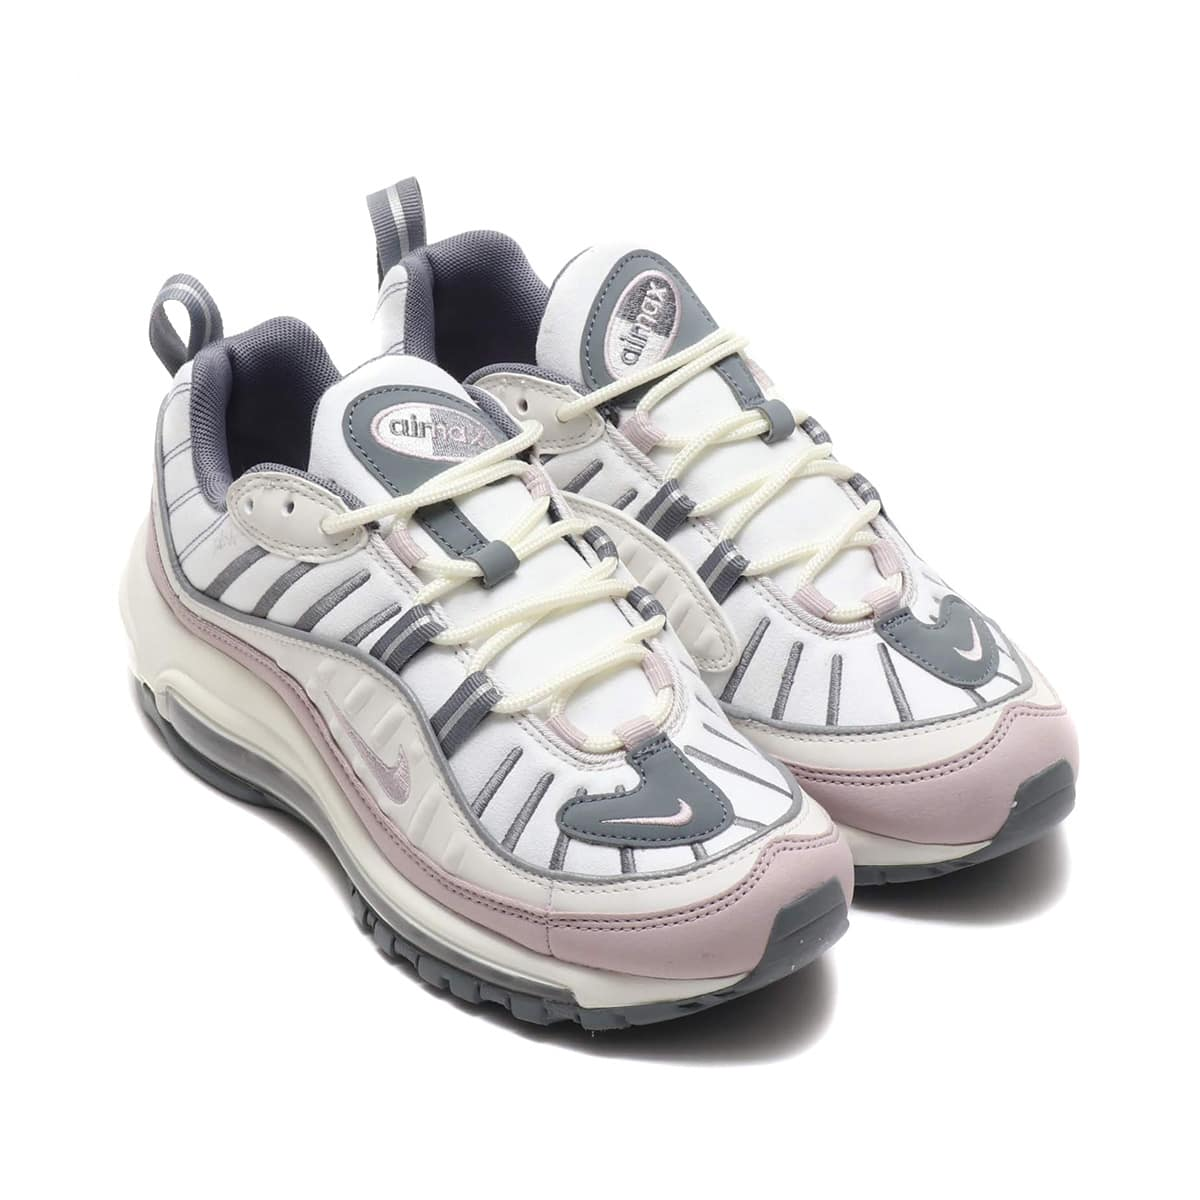 NIKE W AIR MAX 98 SMMT WHT/VLT ASH-CL GRY-RFLCT 19SU-I_photo_large